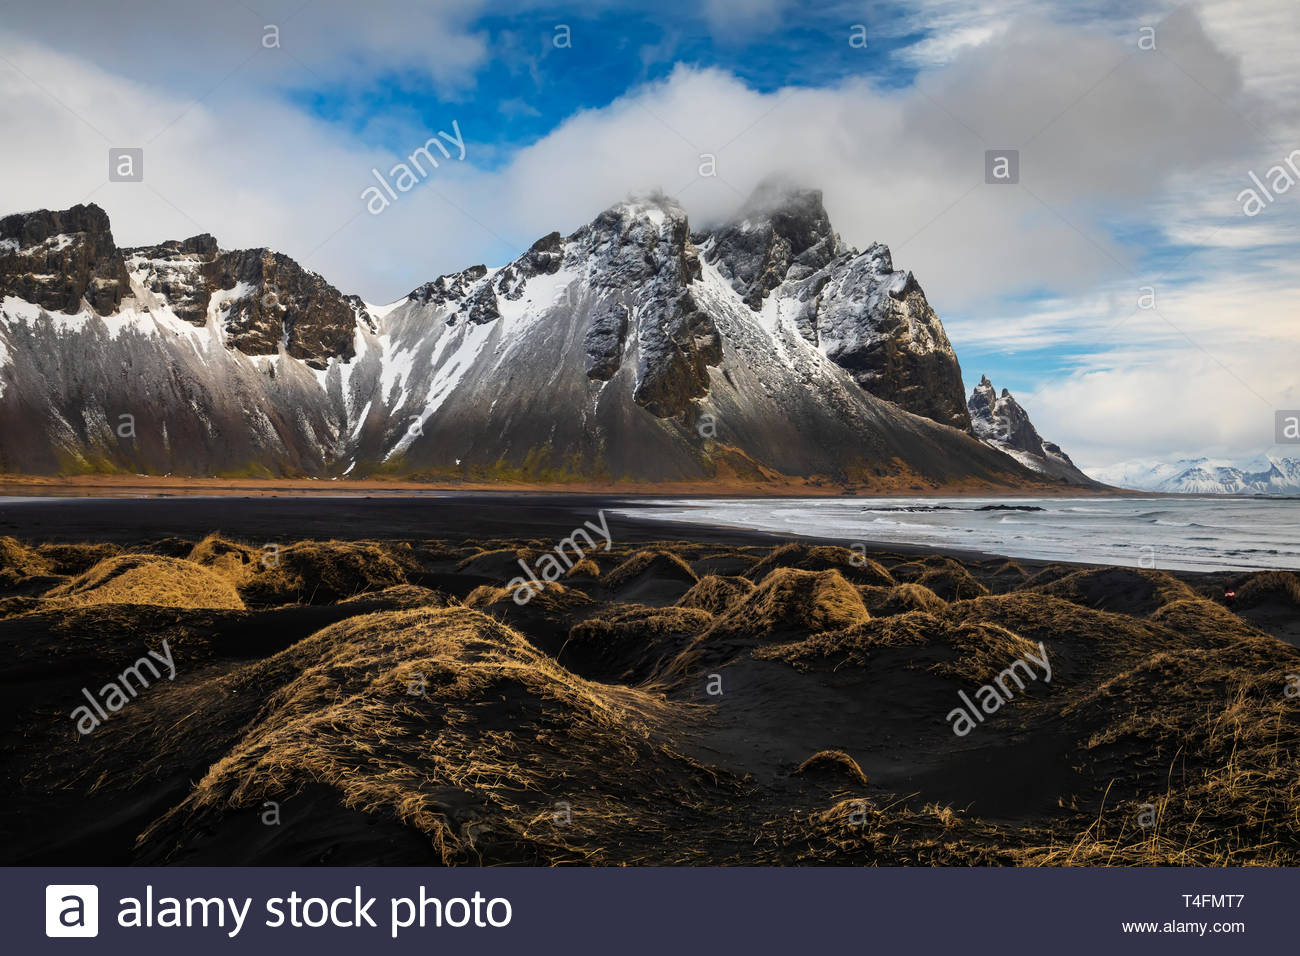 Sunset at Vestrahorn Mountain and Stokksnes beach. Vestrahorn is a popular tourist attraction along the ring road in Eastern Iceland. Stock Photo